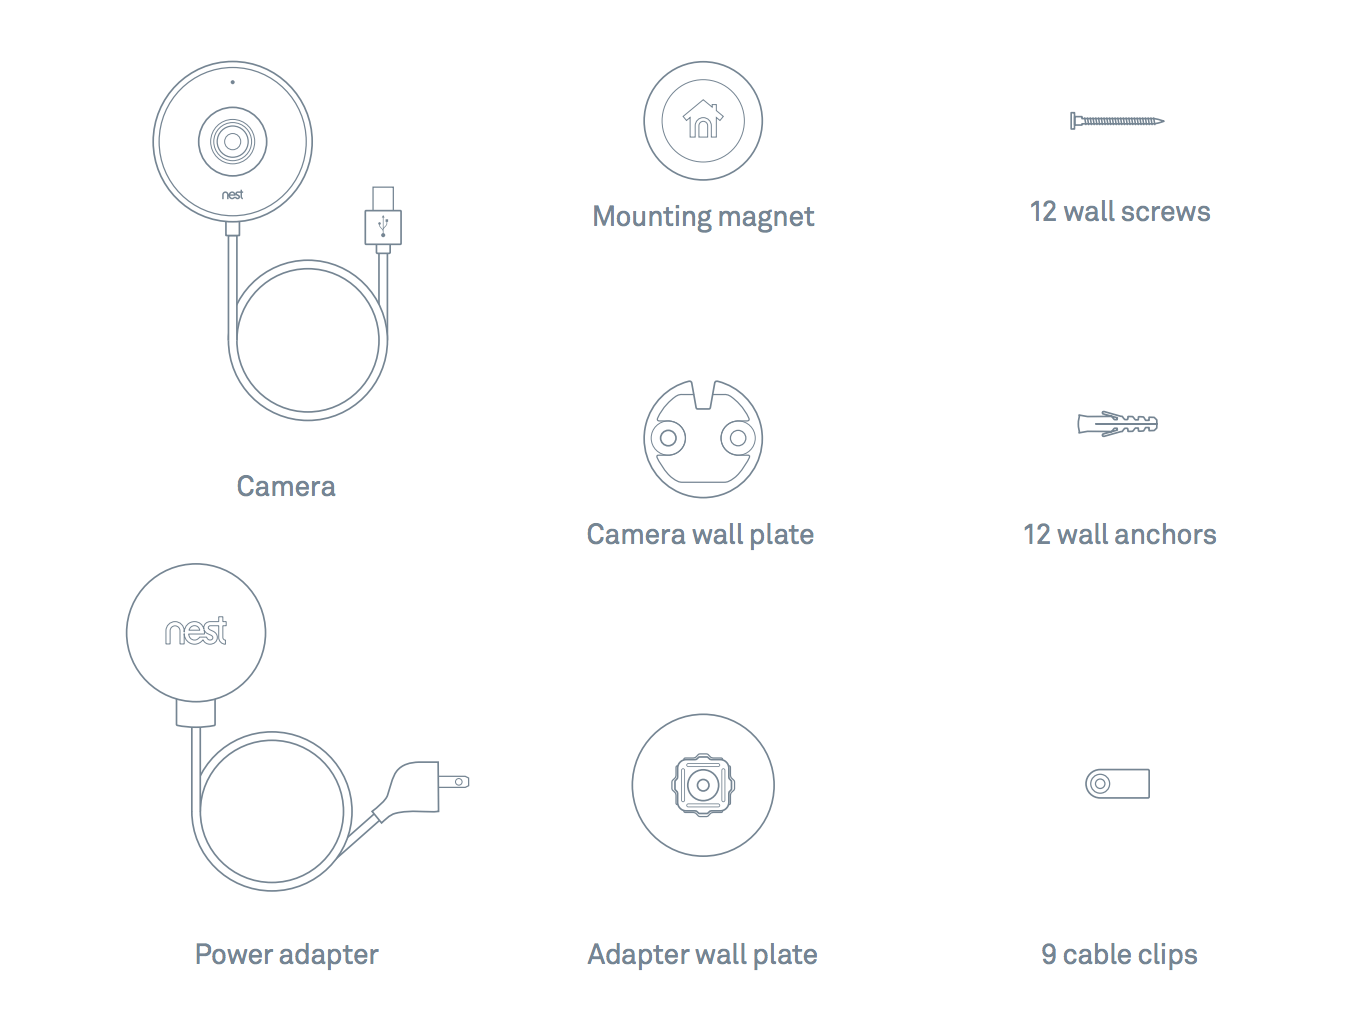 Dropcam Usb Connection Diagram : 30 Wiring Diagram Images